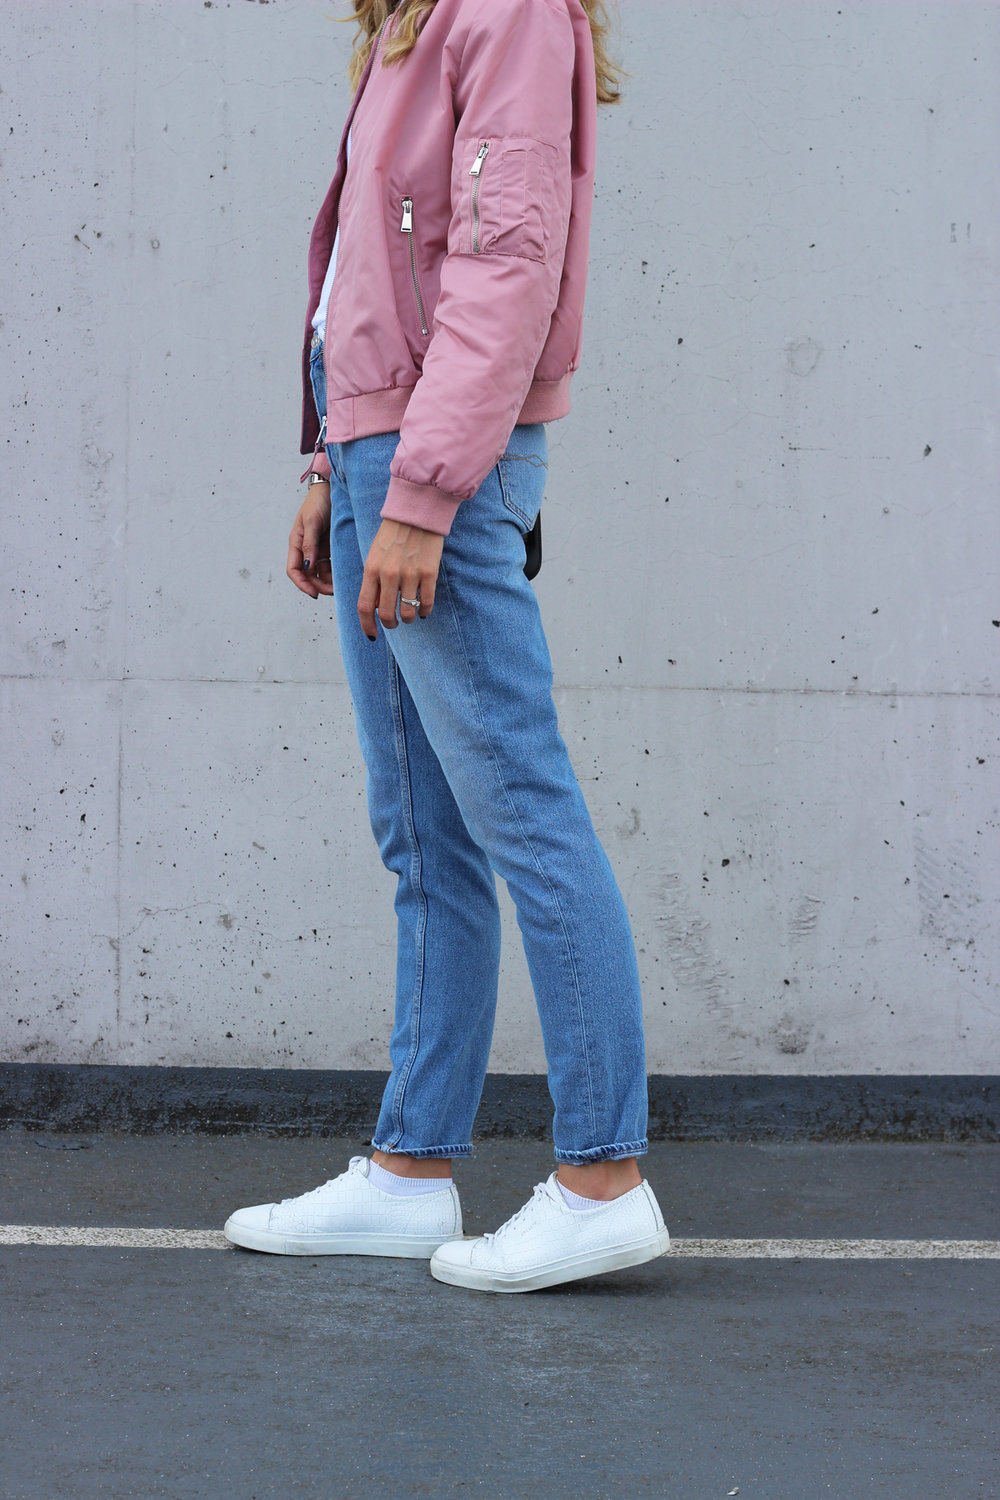 Zara pink quilted bomber (similar) / Zara white basic tee (similar) / Zara blue 'Mom jeans' (similar) / Axel Arigato Cayman cap-toe sneakers (similar) / Proenza Schouler PS11 Tiny bag